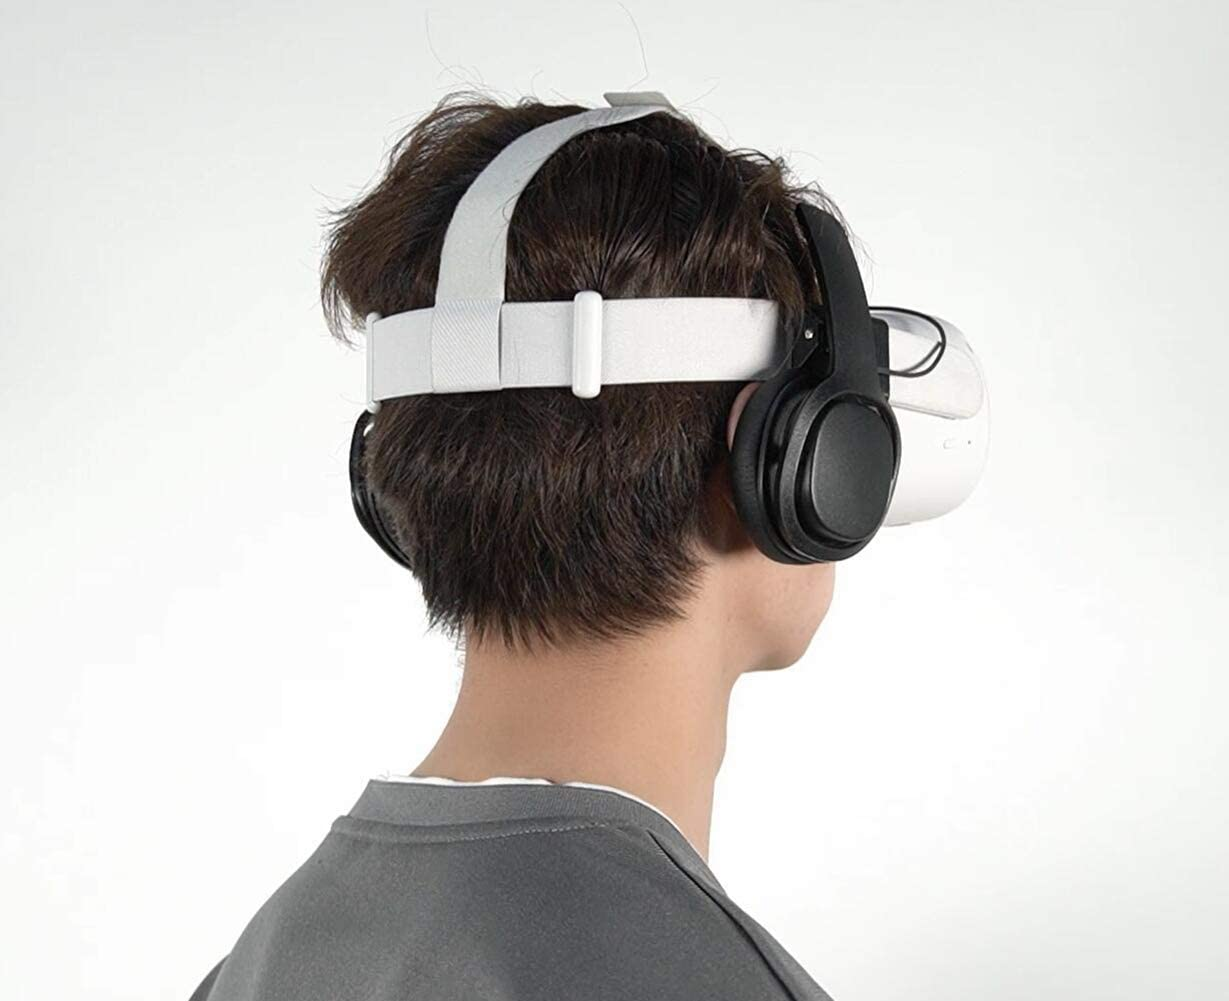 Stereo VR Headphones Custom Made for Oculus Quest 2 Original Head Strap - On Ear Deep Bass 3D 360 Degree Sound- Not Fit Well with The Quest 2 Elite Head Strap